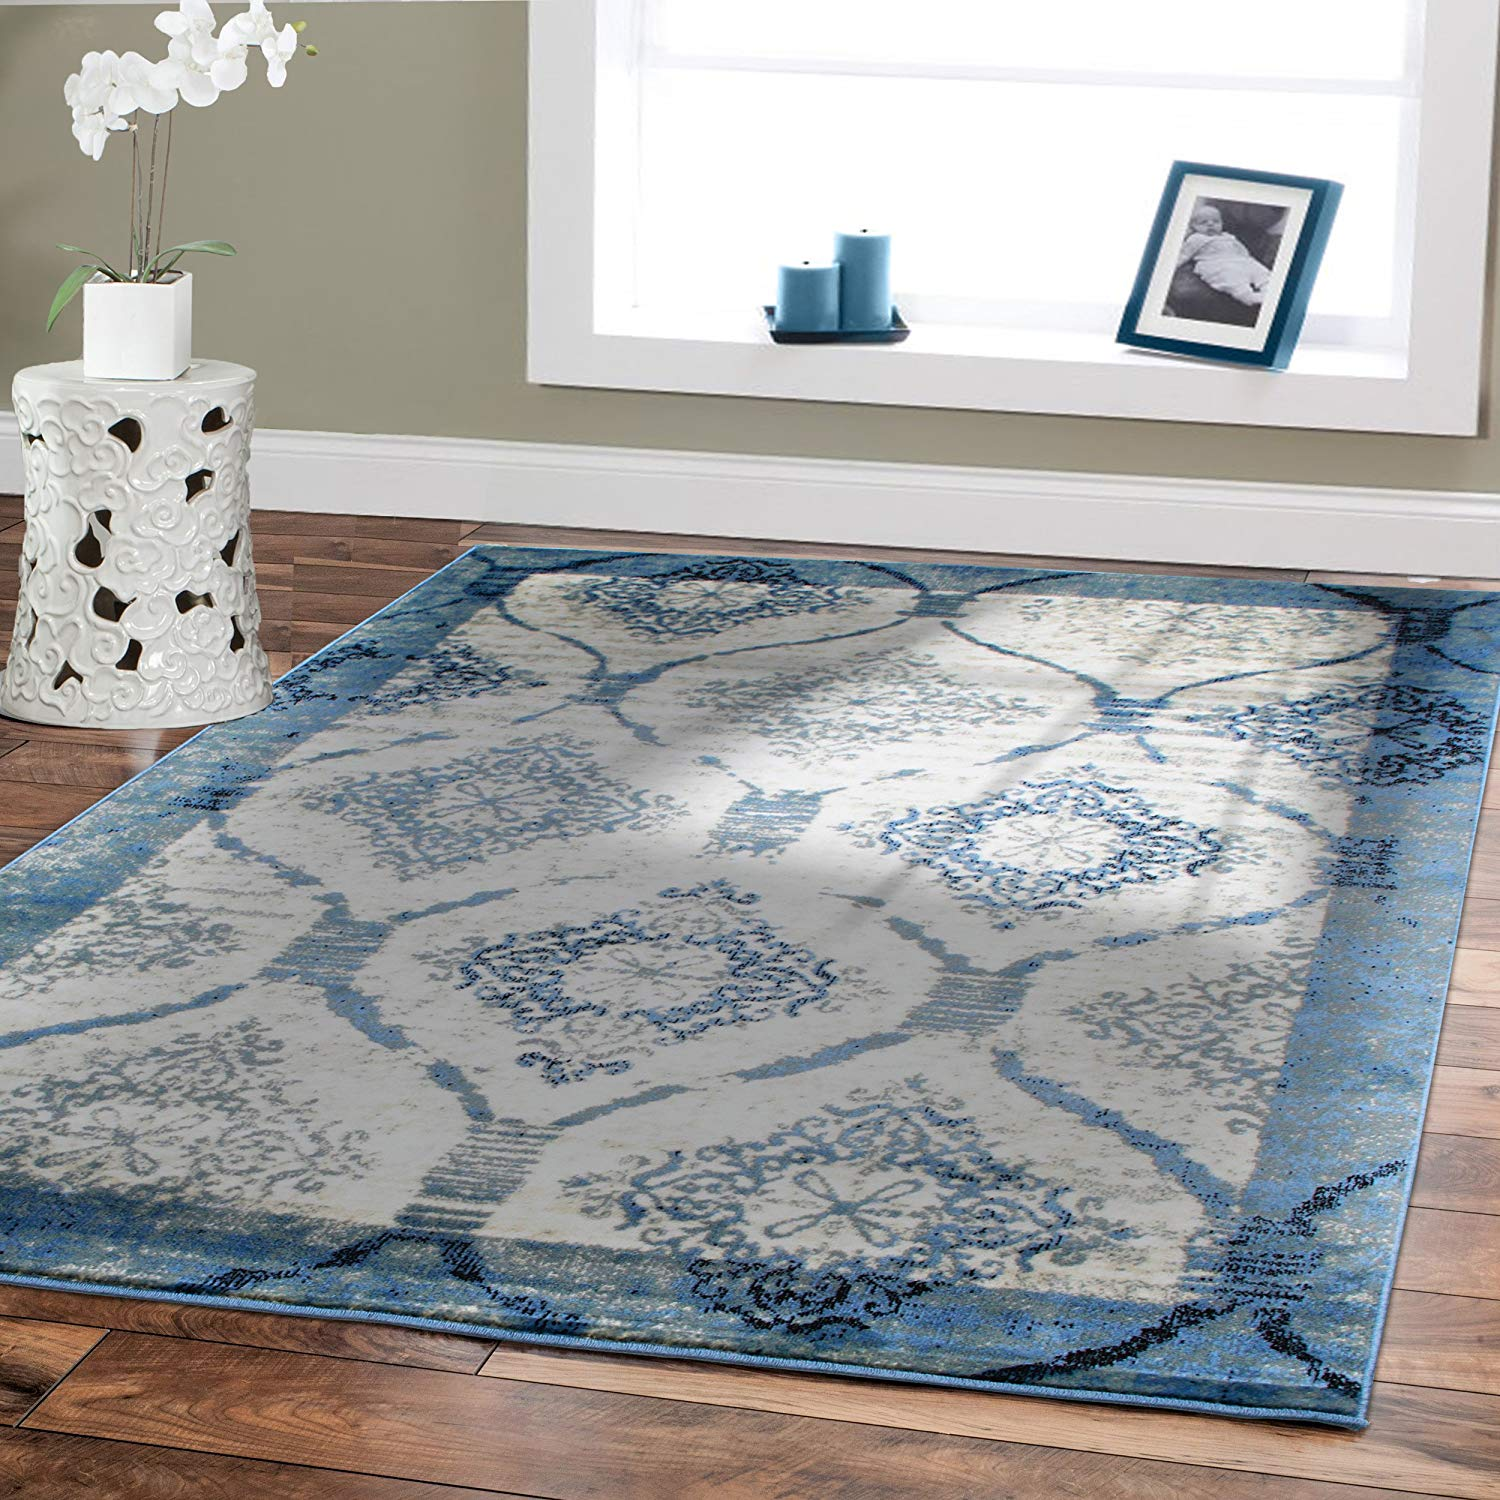 blue area rugs amazon.com: contemporary rugs for living room 5x8 blue area rug modern ZQCCXWI